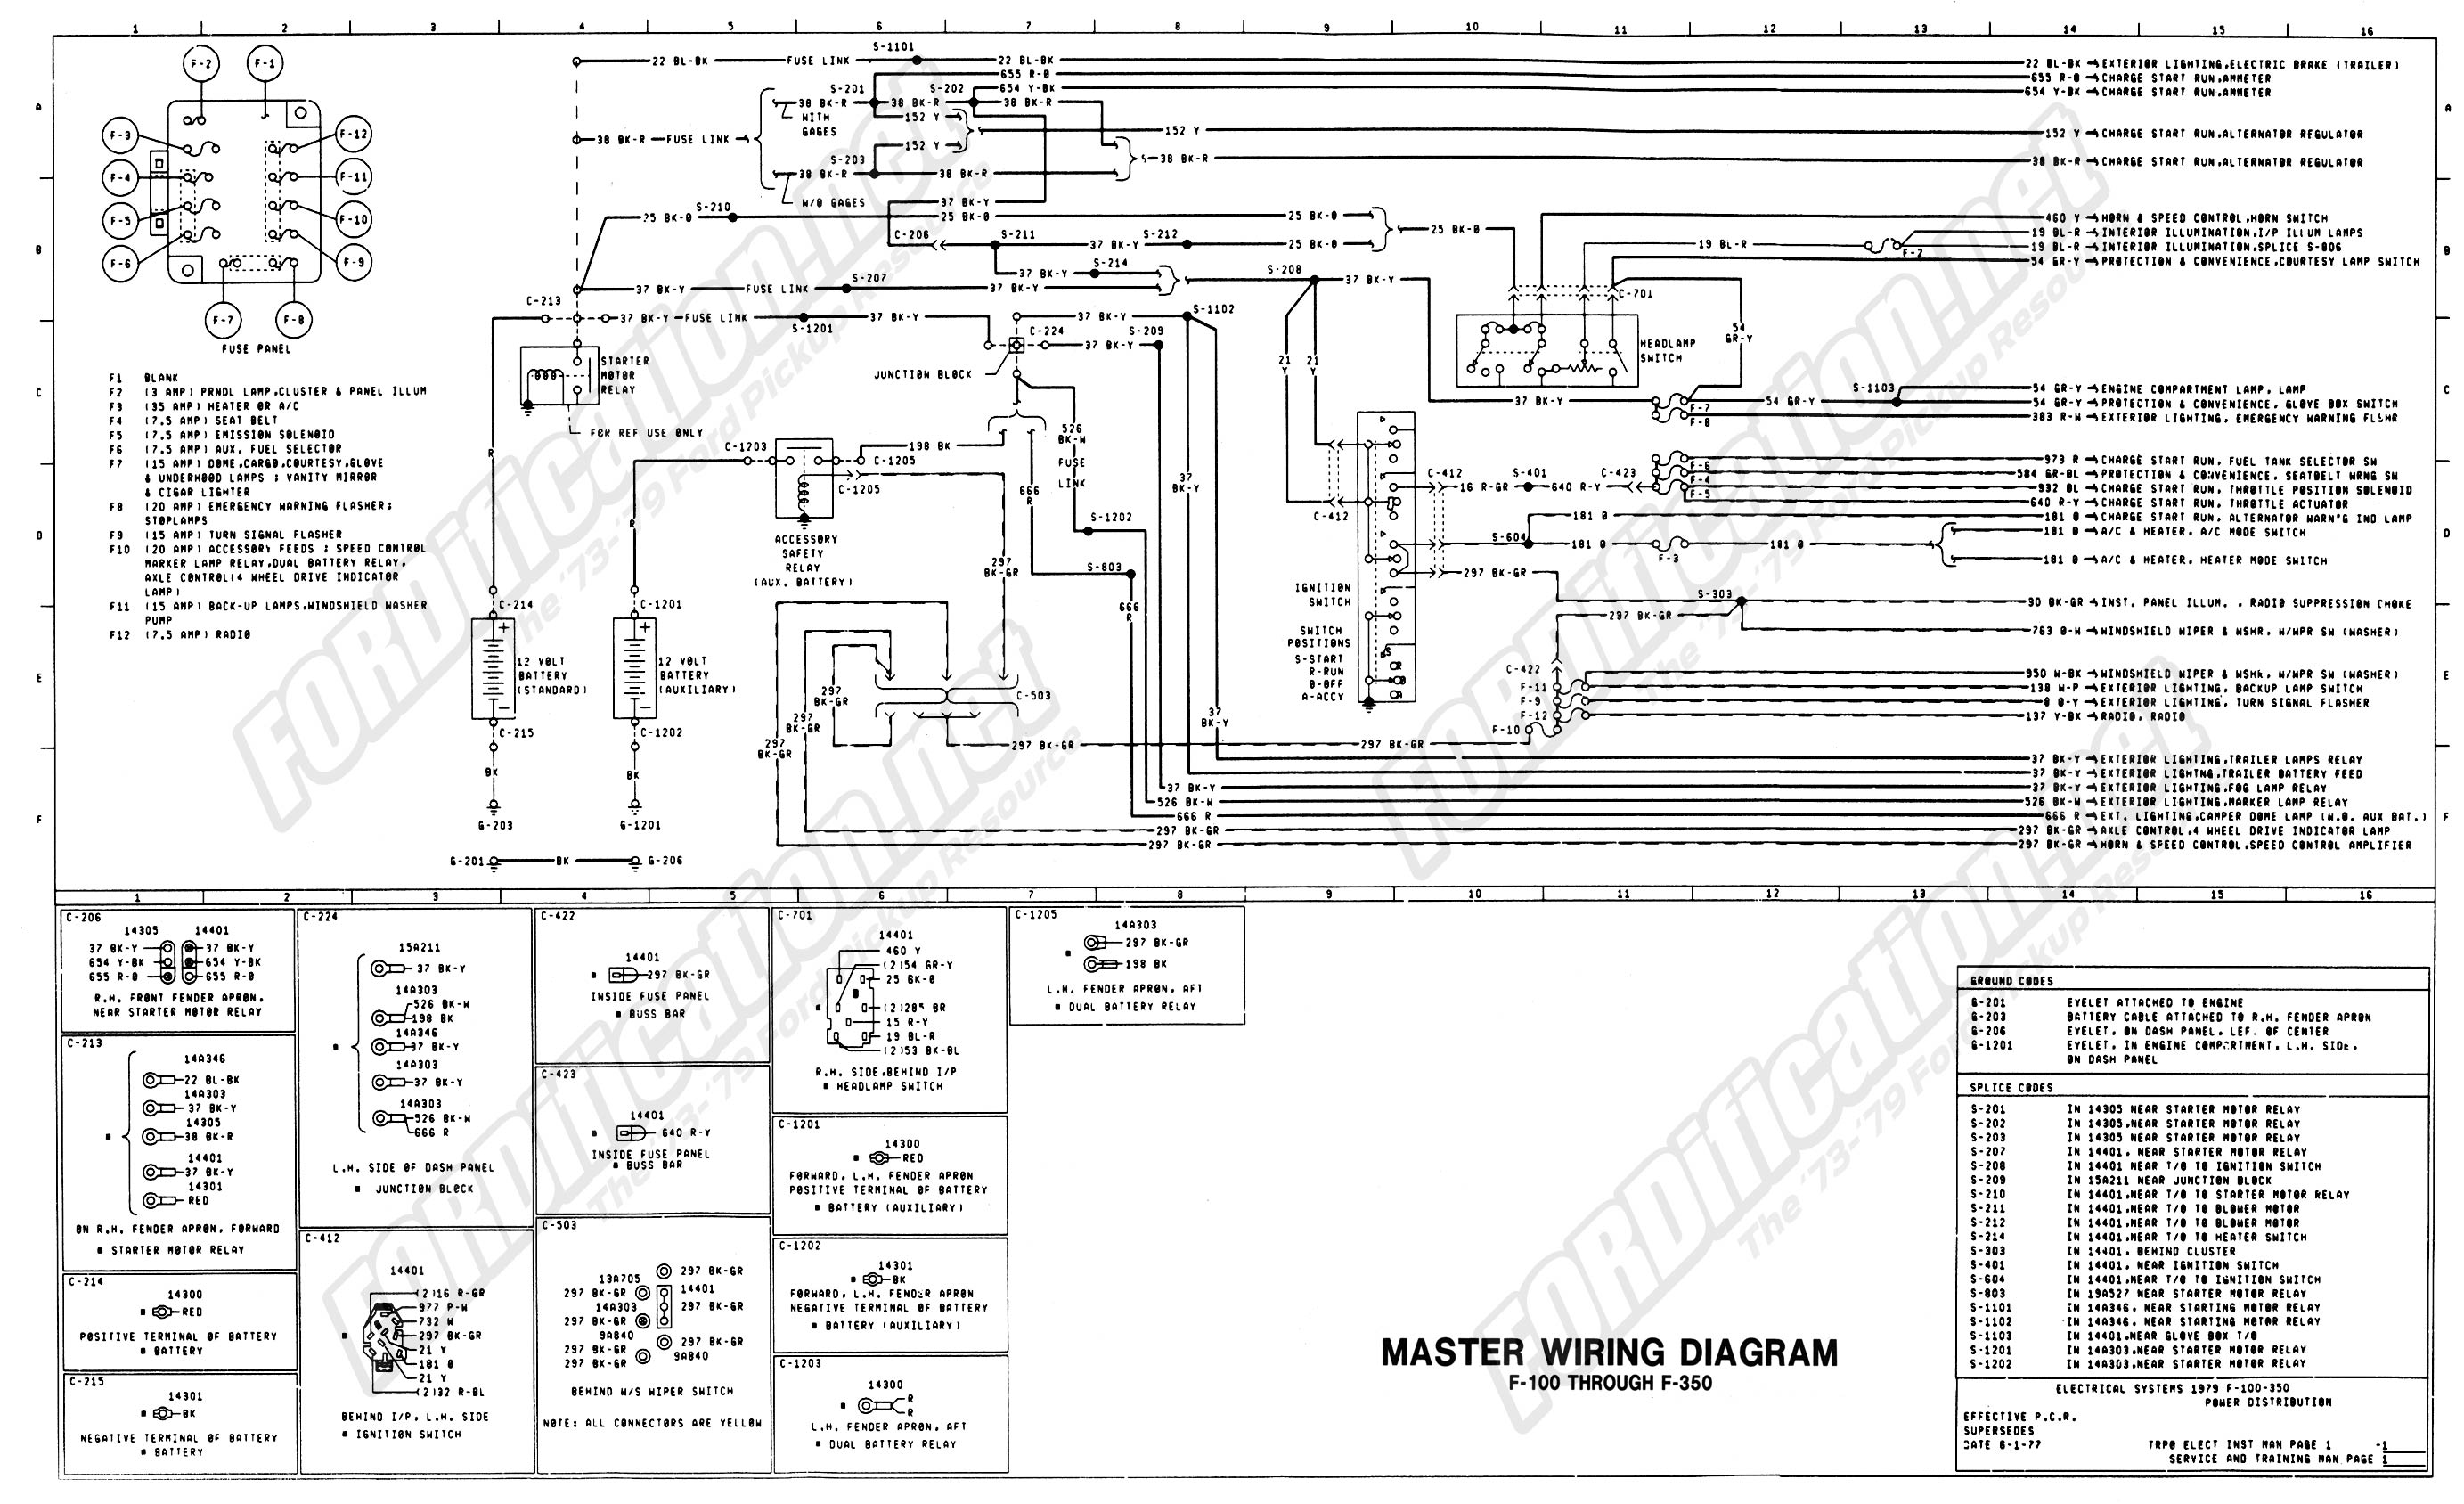 wiring_79master_1of9 1973 1979 ford truck wiring diagrams & schematics fordification net 1979 ford truck fuse box diagram at bayanpartner.co